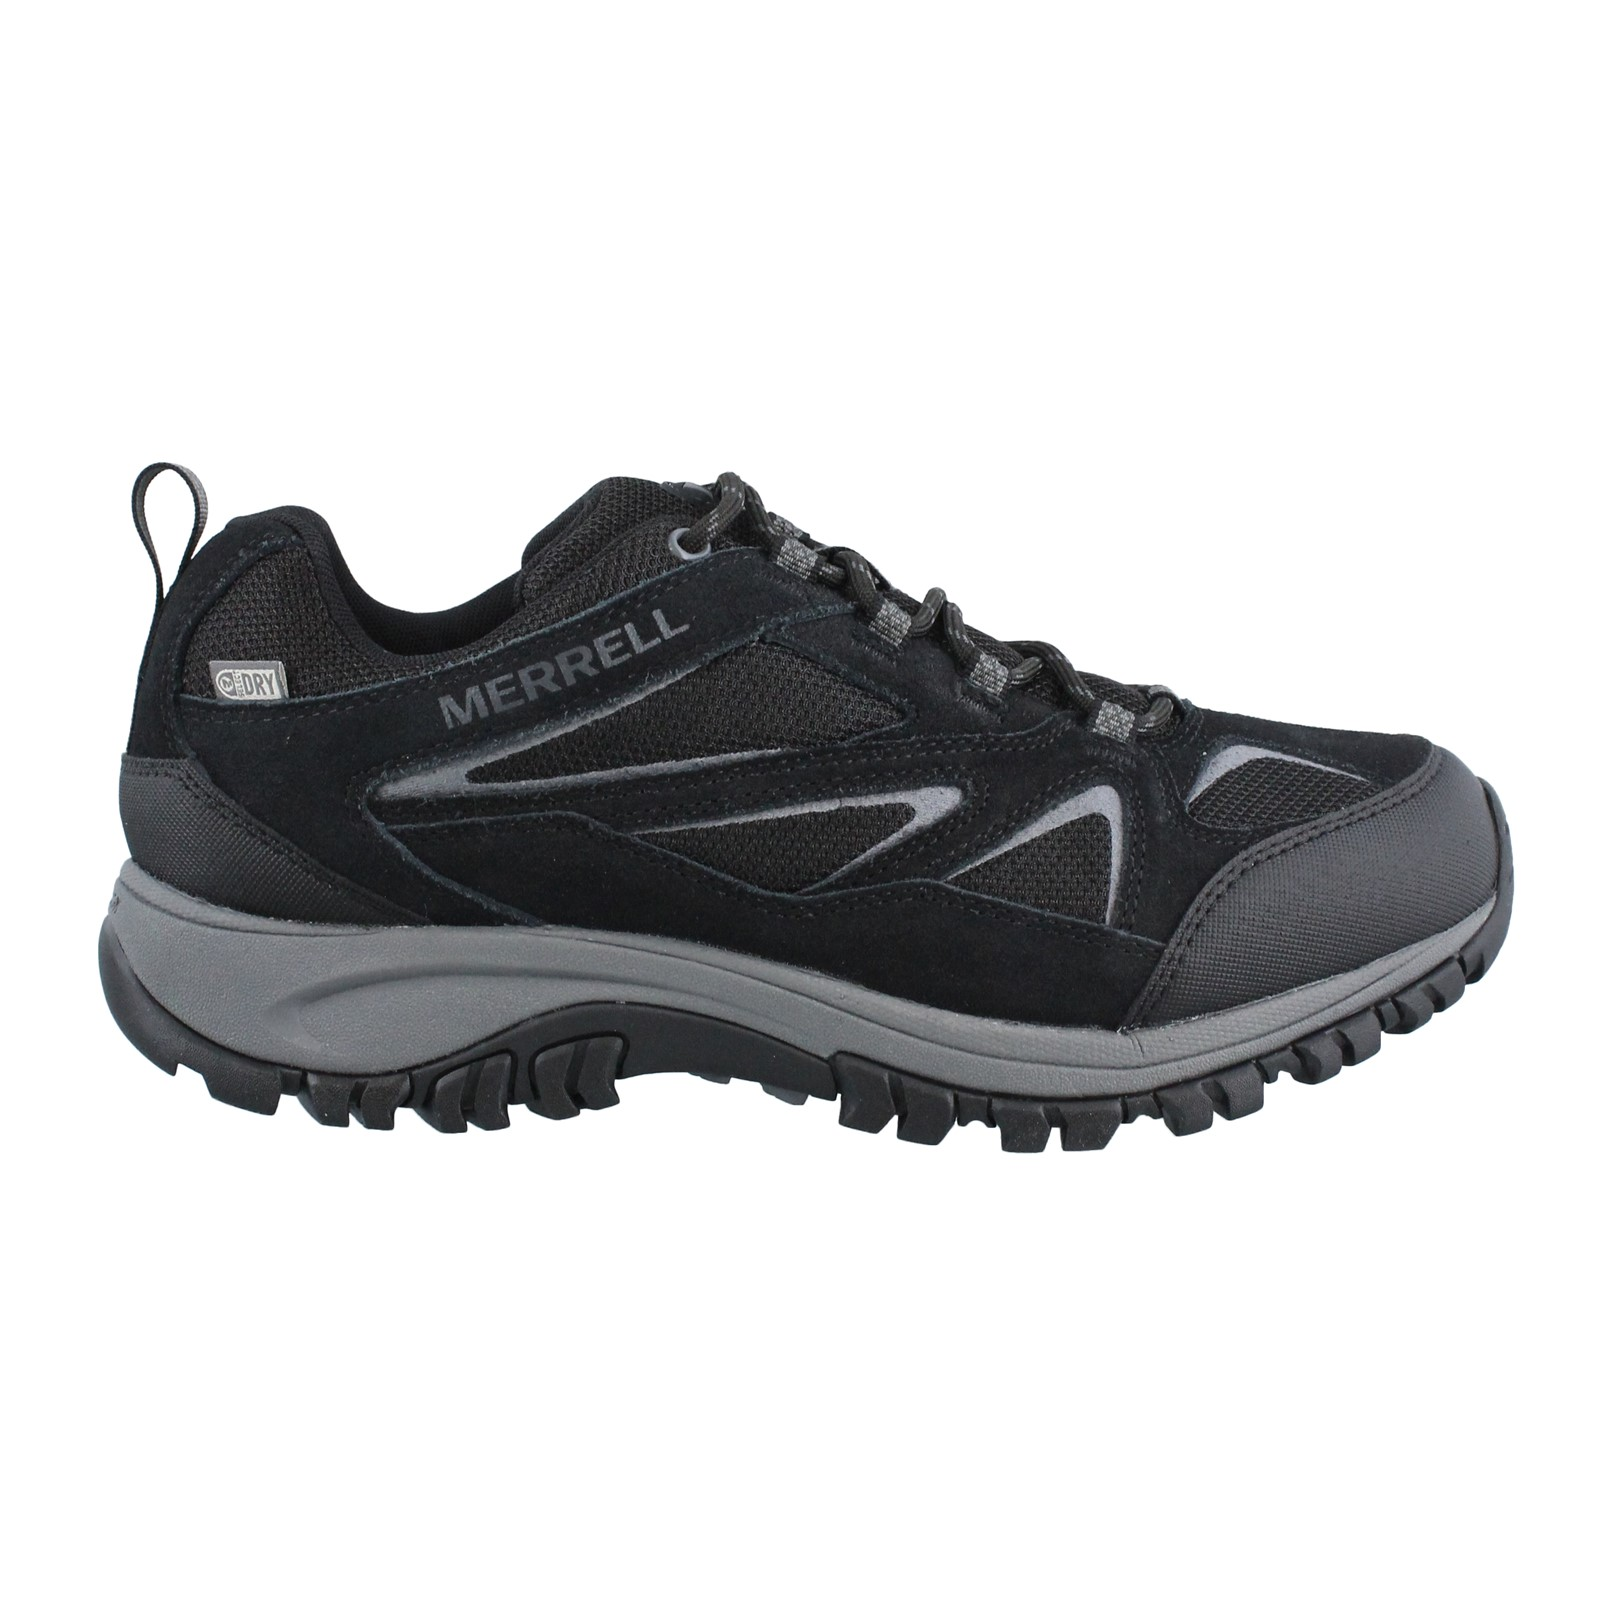 ae8cadf9776 Men's Merrell, Phoenix Bluff Mid Waterproof Hiking Shoe Wide Width